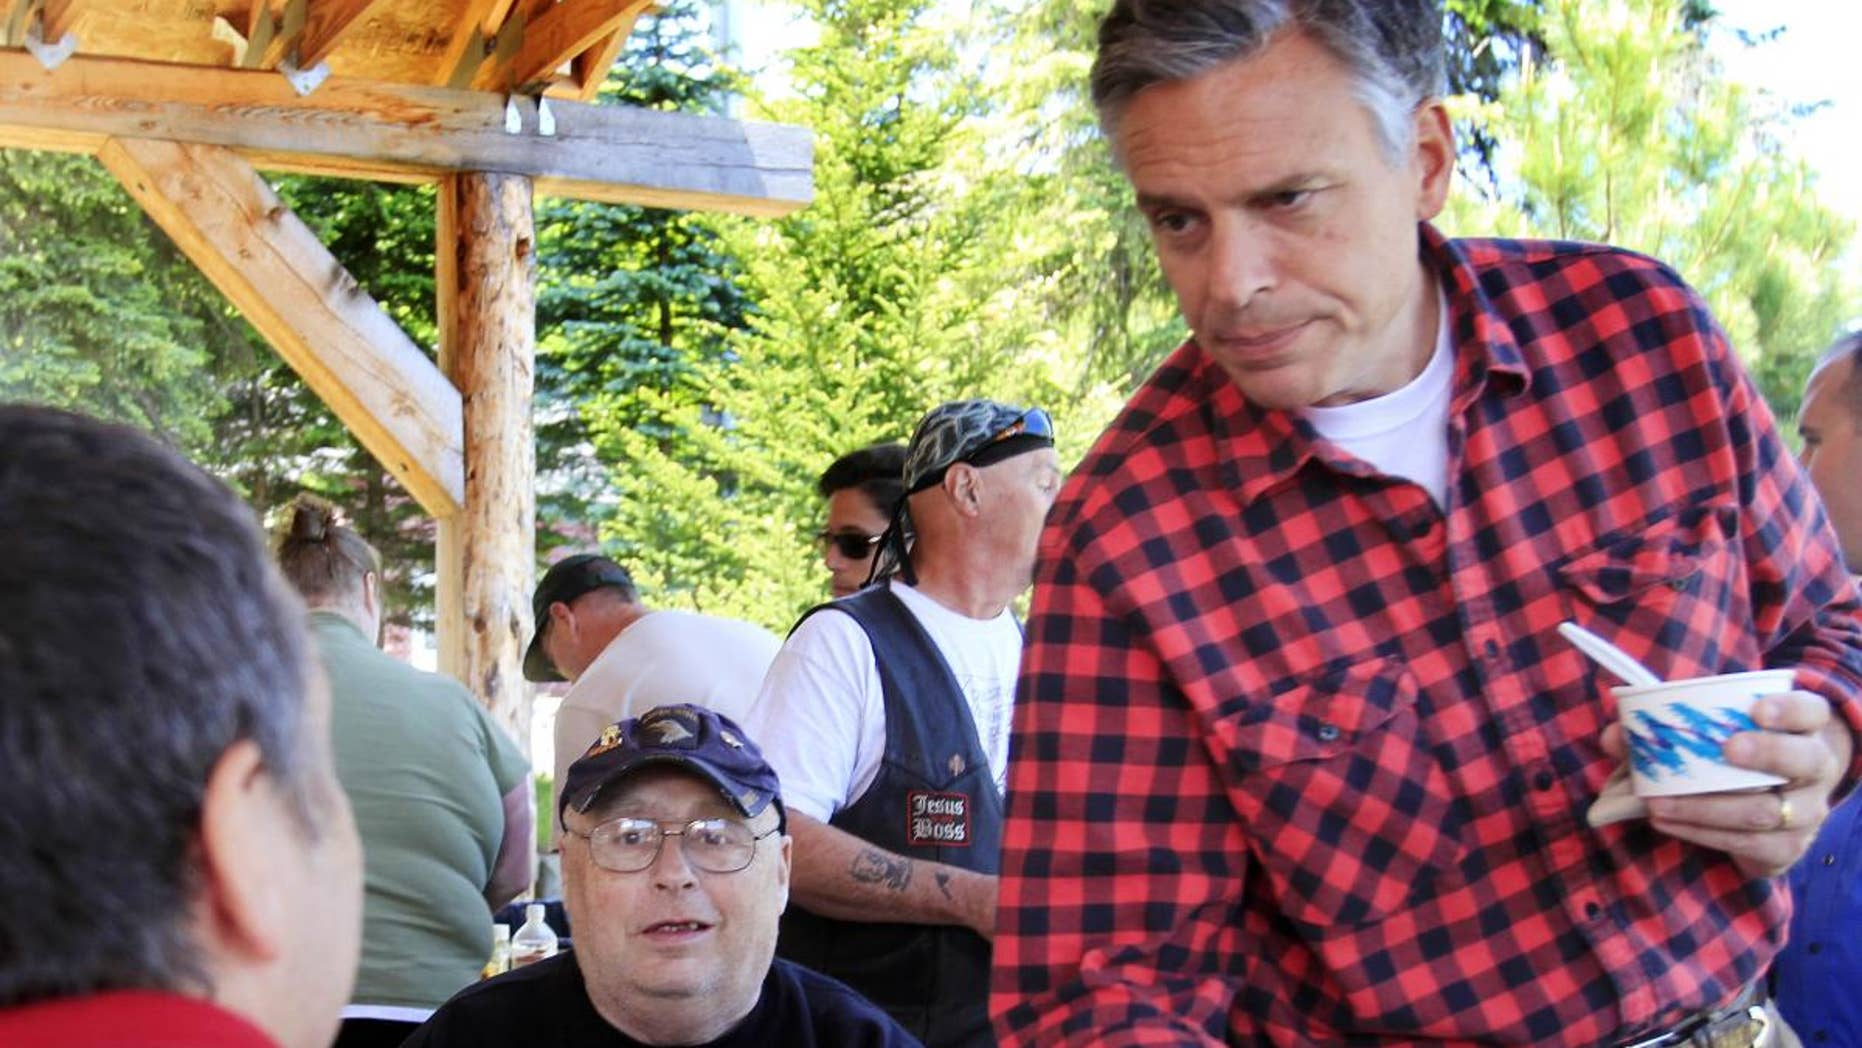 With his wife Mary Kaye at his side possible 2012 presidential hopeful, former Republican Gov. Jon Huntsman, Jr., of Utah shakes hands during a cultural festival at Heritage Park, Saturday, June 4, 2011 in Berlin, N.H. (AP Photo/Jim Cole)